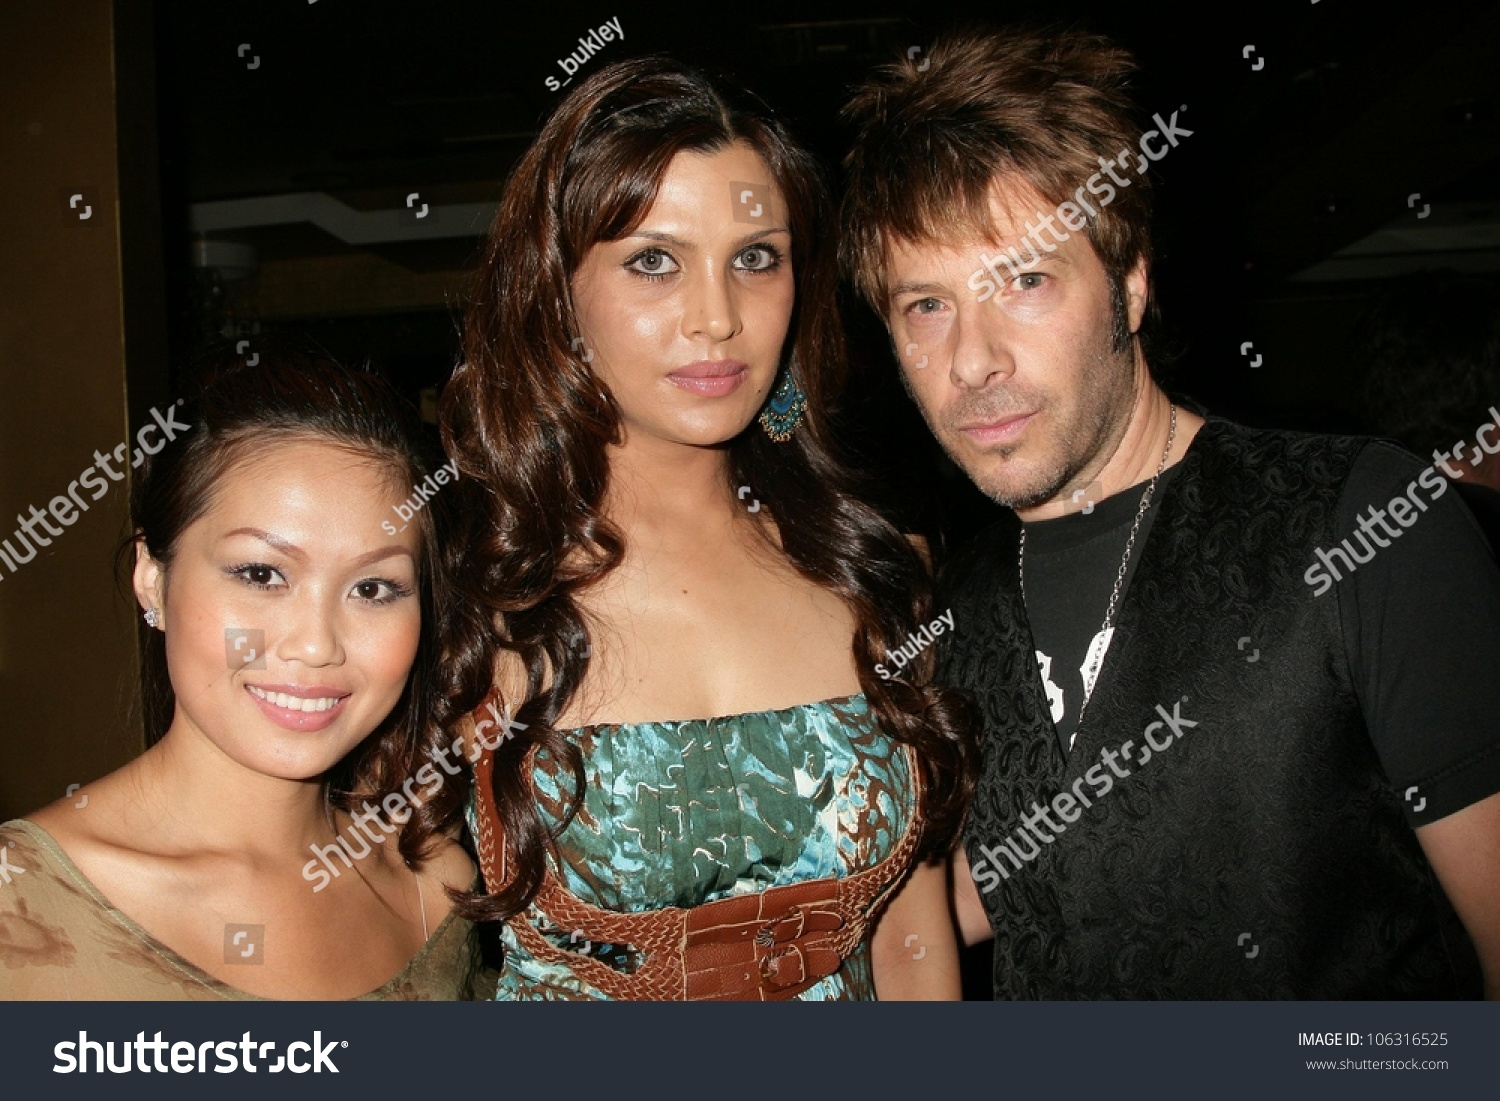 Discussion on this topic: Tina Dutta, kimi-verma/